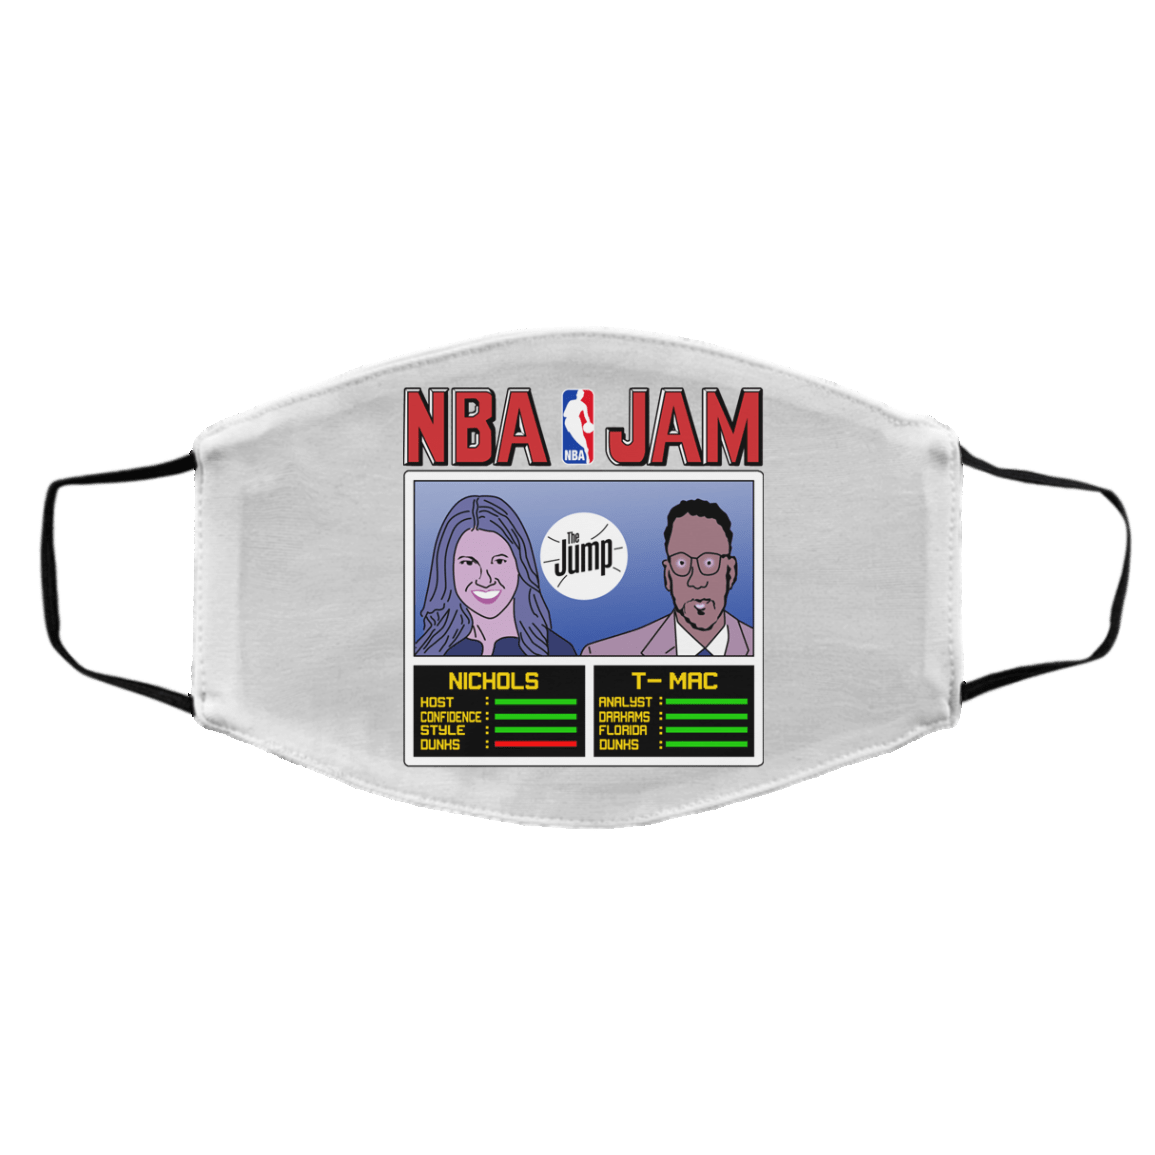 NBA Jam The Jump Nichols TMac Face Mask 1274-13170-93051372-59058 - Tee Ript